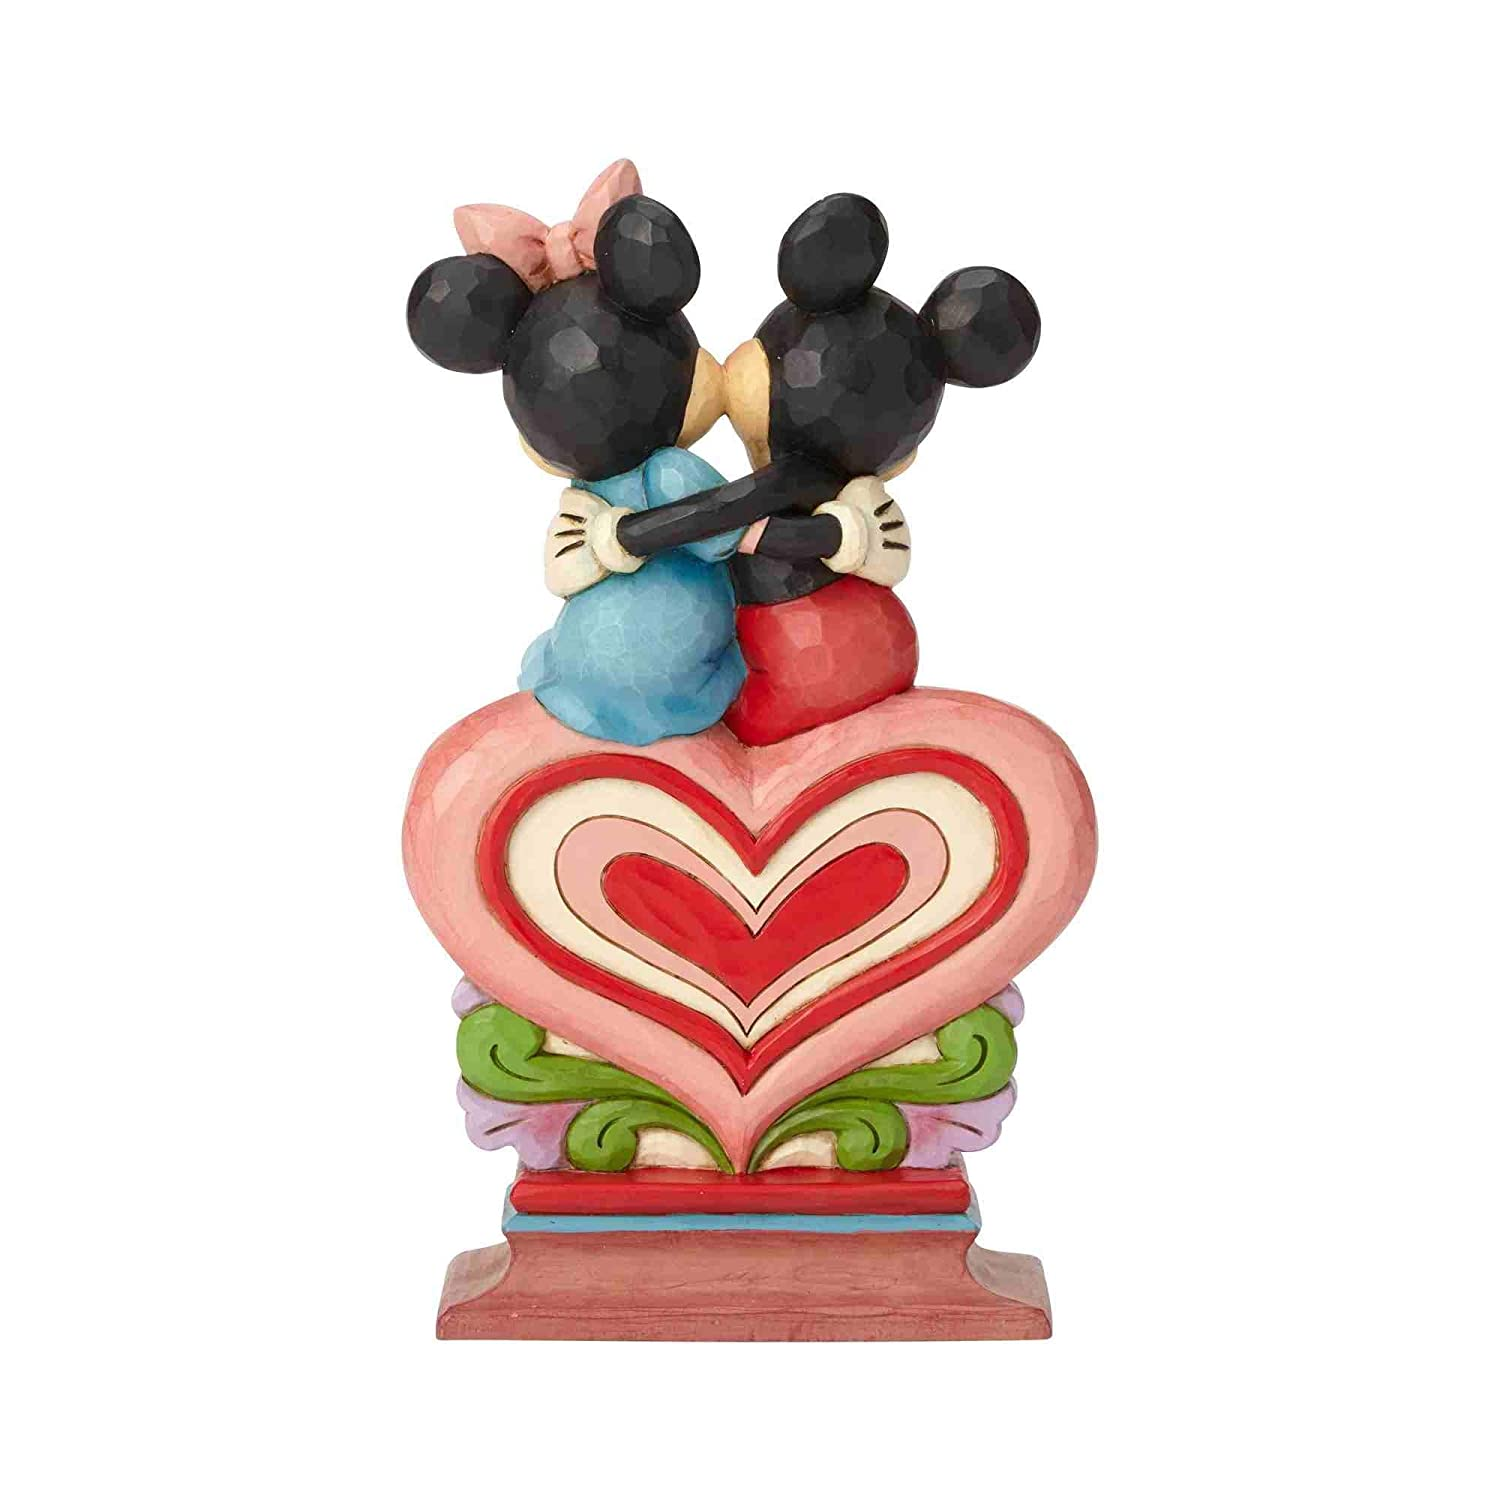 Enesco Disney Traditions Mickey Minnie Sitting on Heart